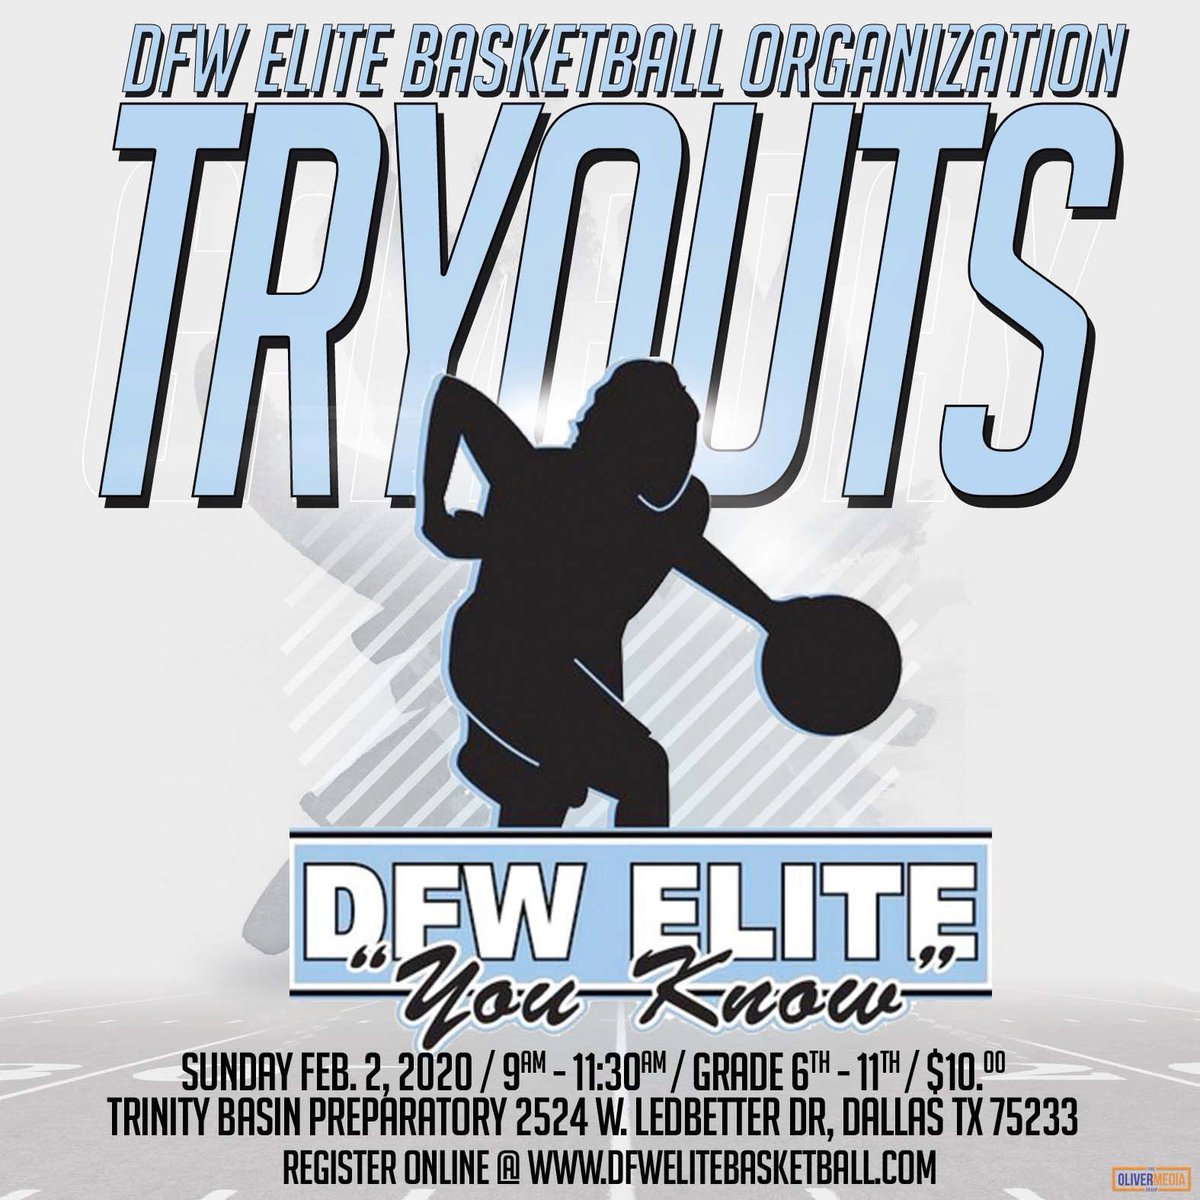 Tryouts this Sunday morning 6th-11th grades Registers online https://t.co/Bkvc3YusPh $10 https://t.co/4DFqjsUvBK